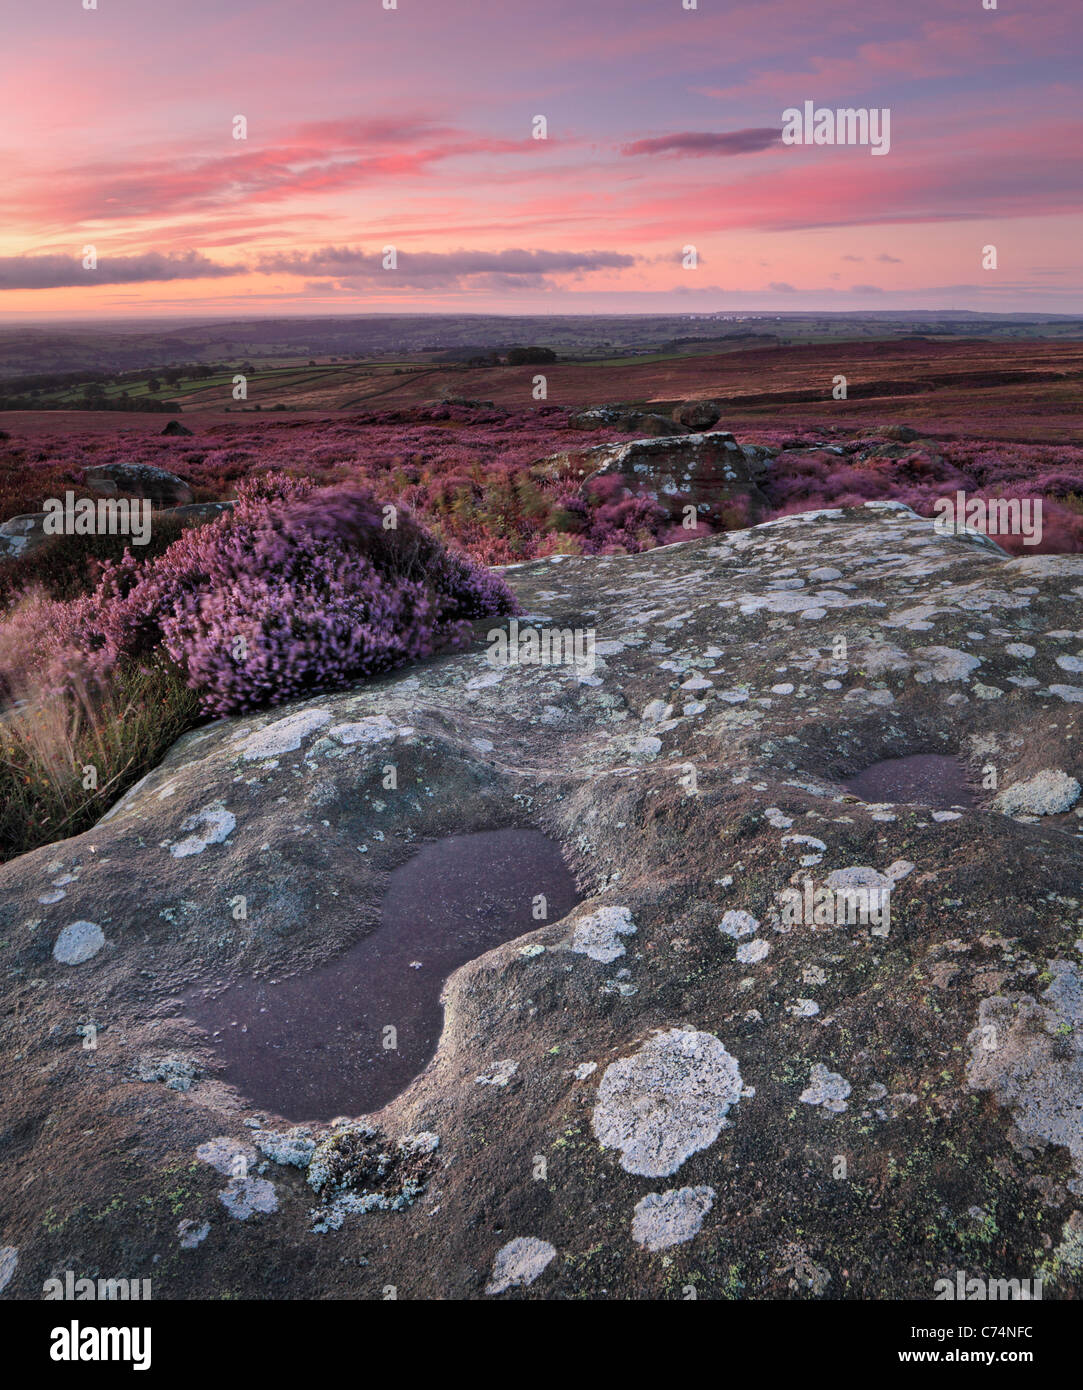 Early morning light on the brightly colored heather of High Crag Ridge and Guise Cliff overlooking Nidderdale - Stock Image